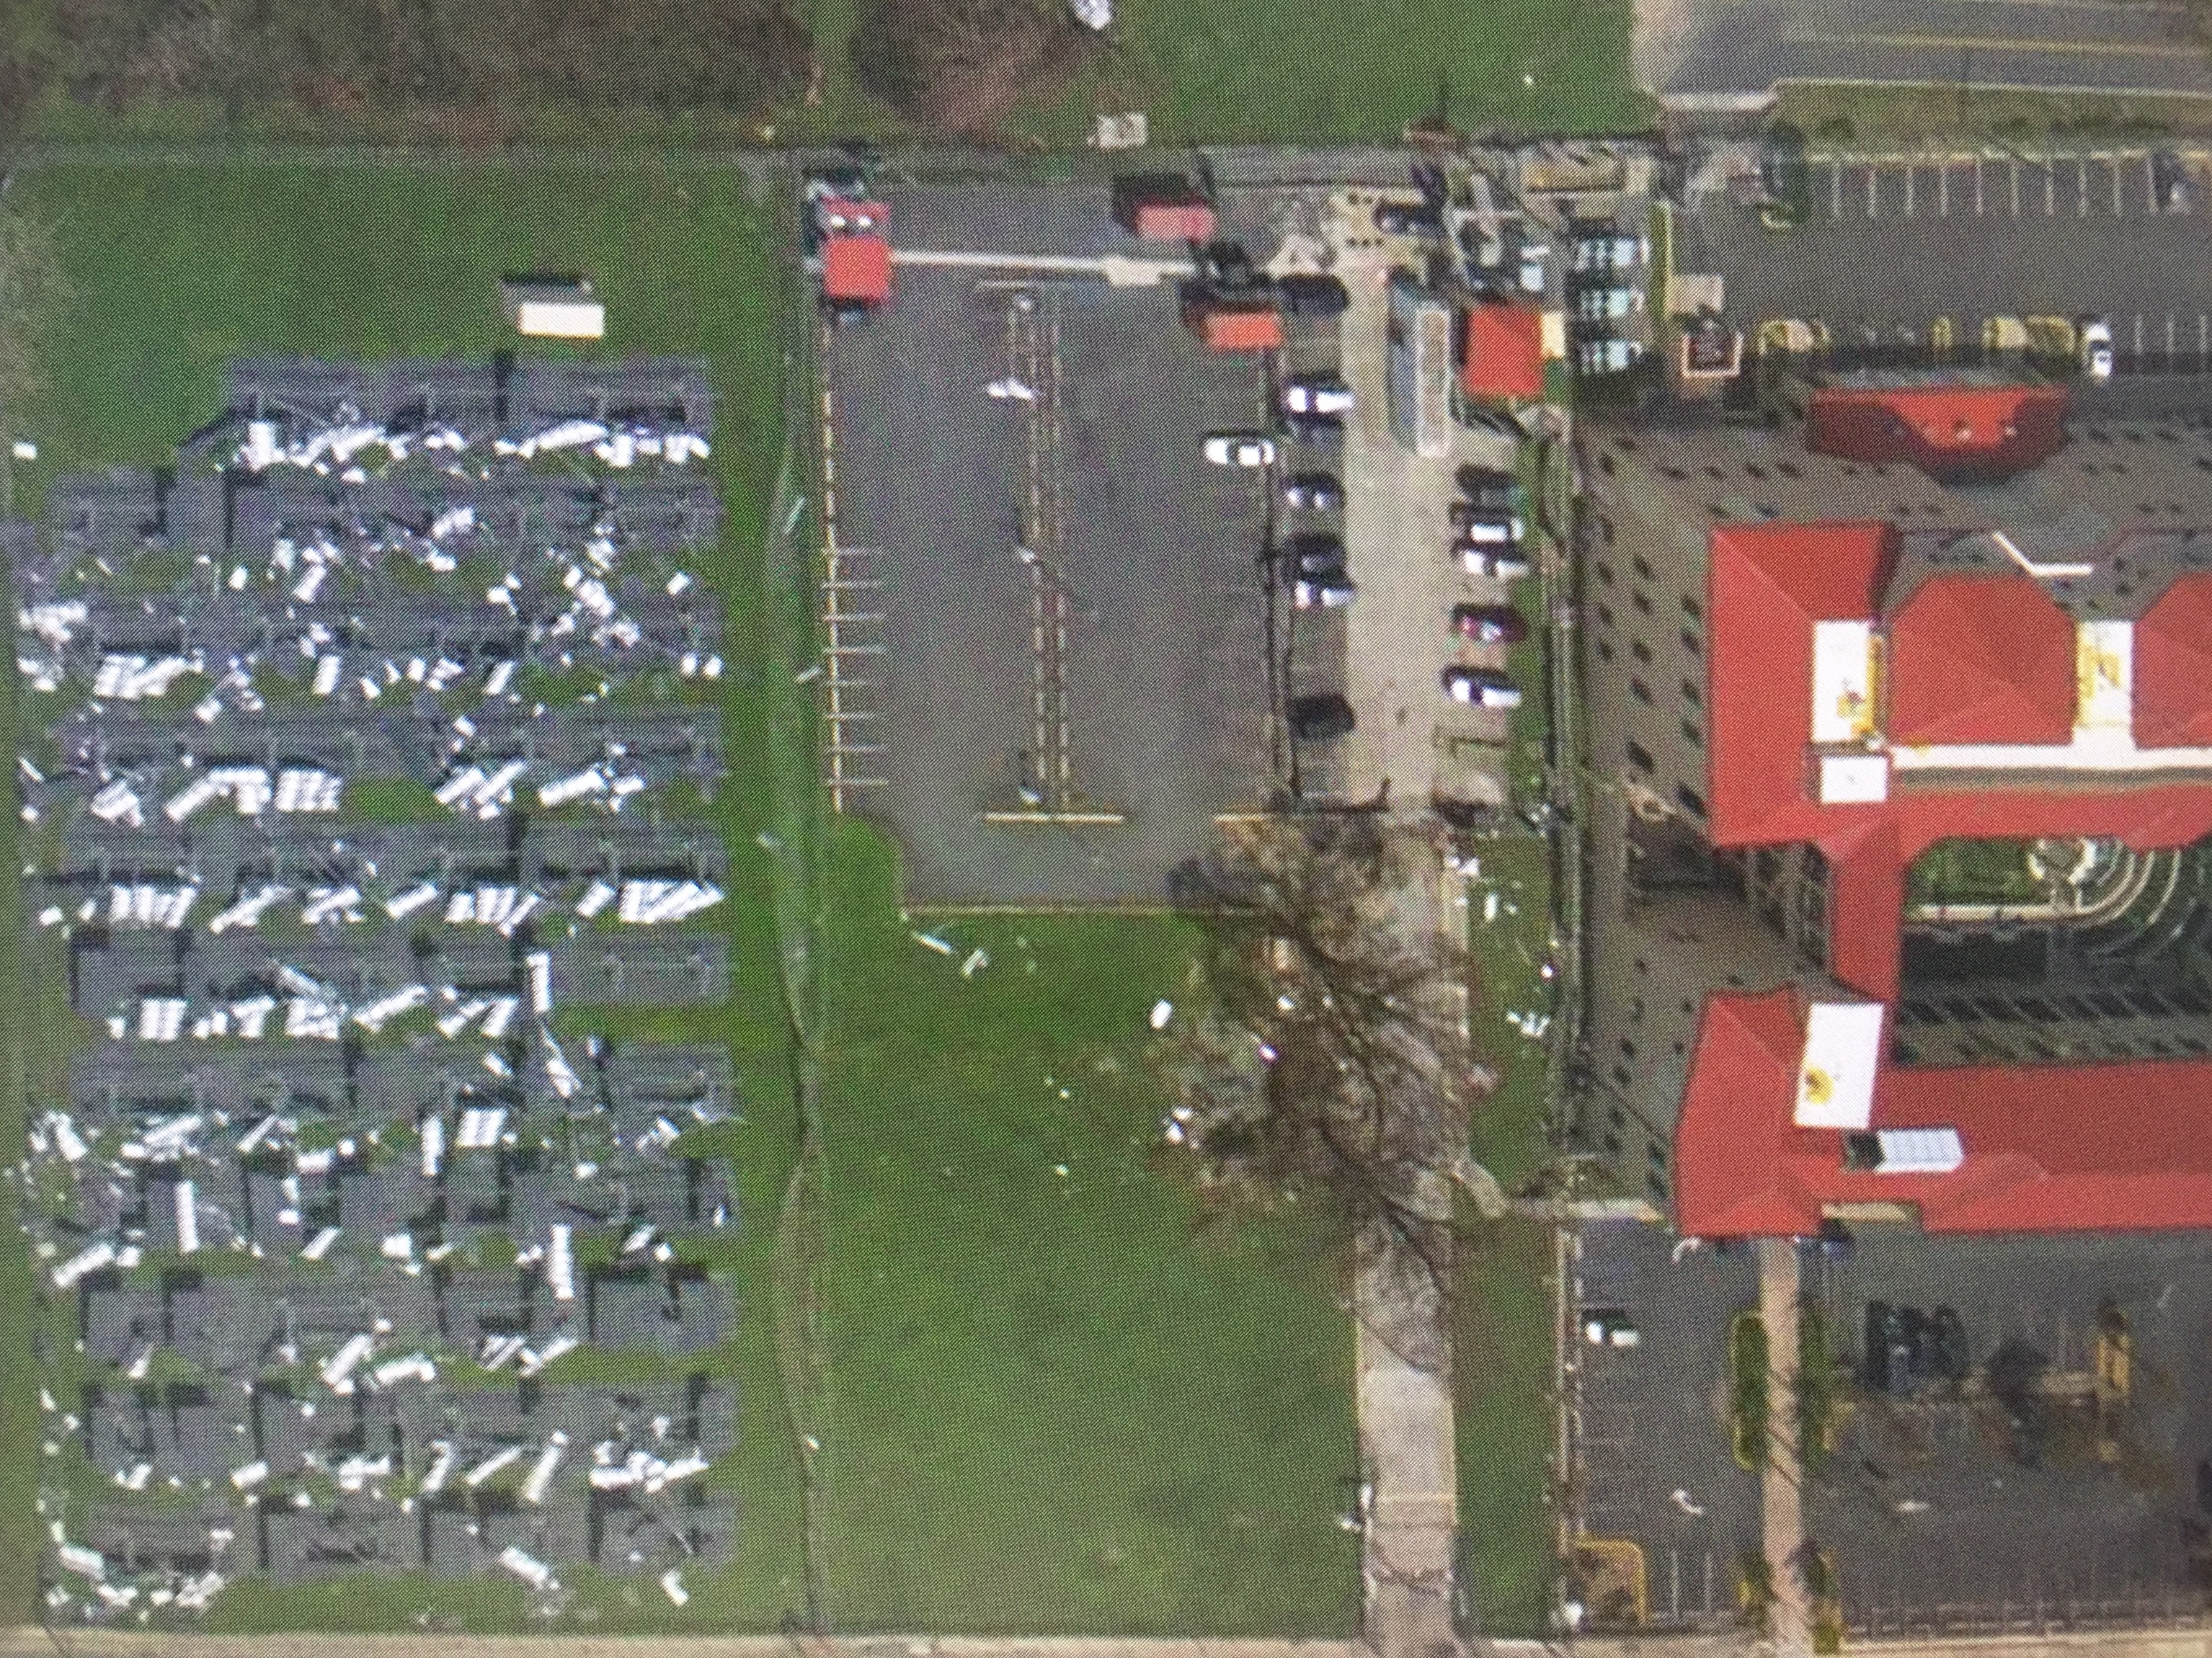 A Post Hurricane Image Of The Federal Courthouse In St. Croix (on Right  With Red Roof) And The Courthouseu0027s Solar Panel Field (left).